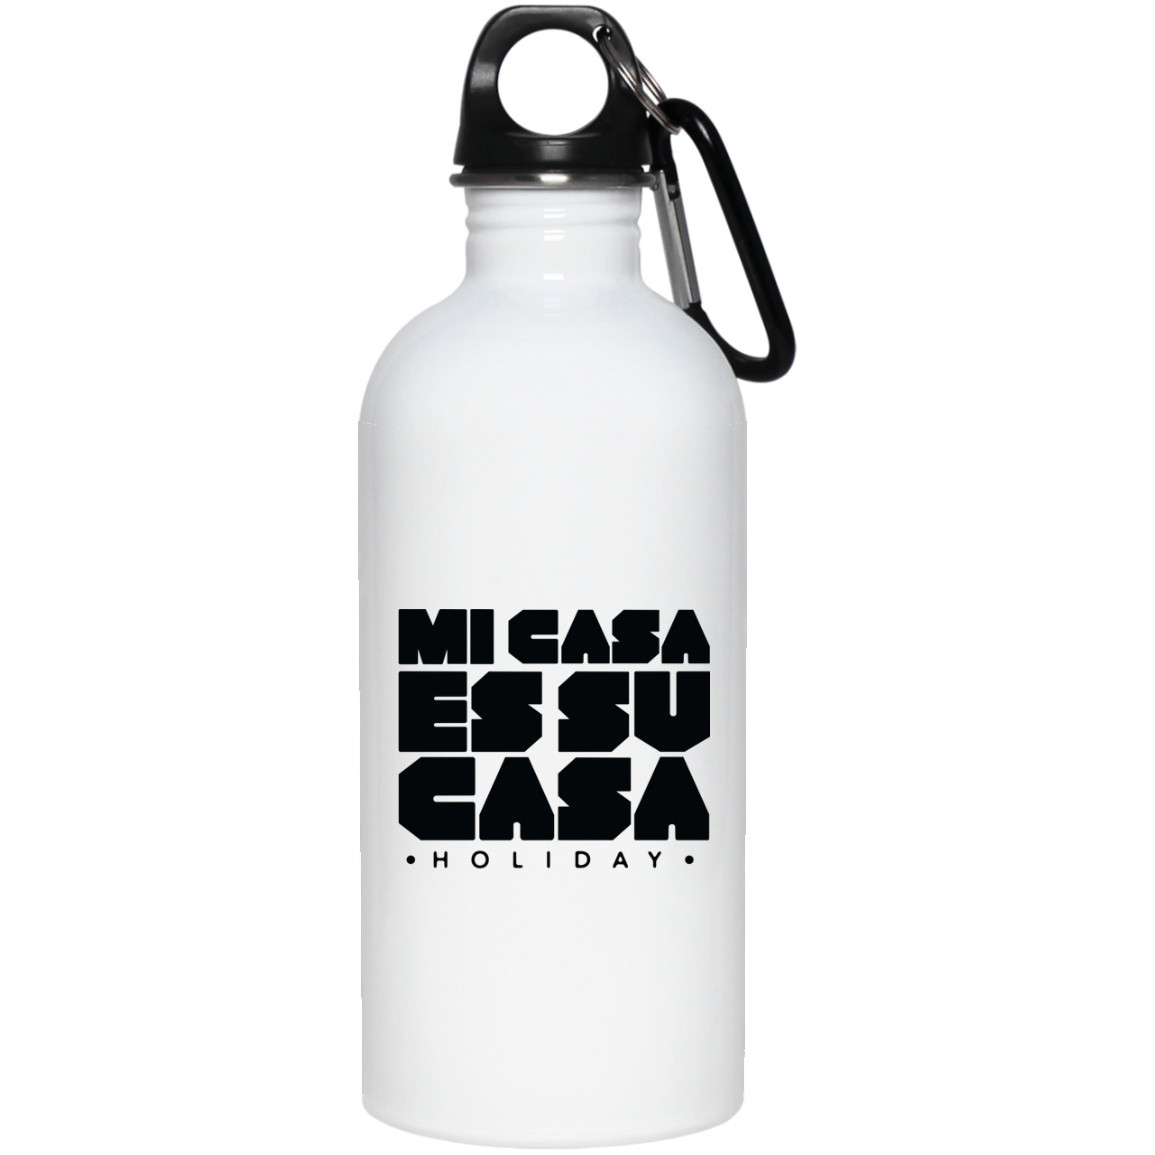 Classic Mi Casa Holiday 20 oz. Stainless Steel Water Bottle